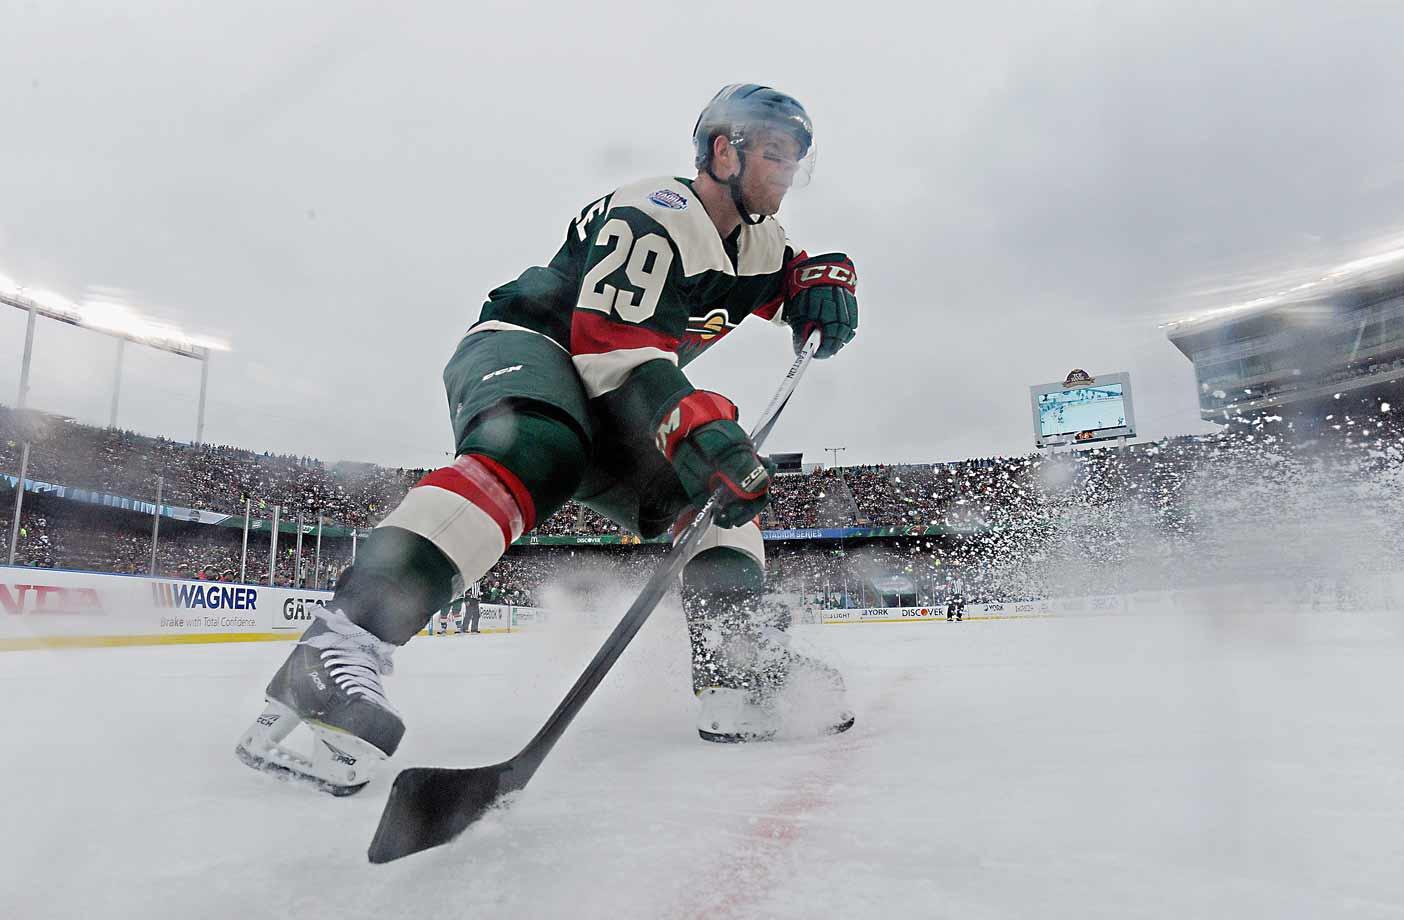 Center Jason Pominville and his linemates Nino Niederreiter and Erik Haula had a big day, combining for three goals and eight points in Minnesota's 6–1 rout. With a goal and two assists apiece, Pominville and Haula tied the NHL outdoor game scoring record held by seven other players.